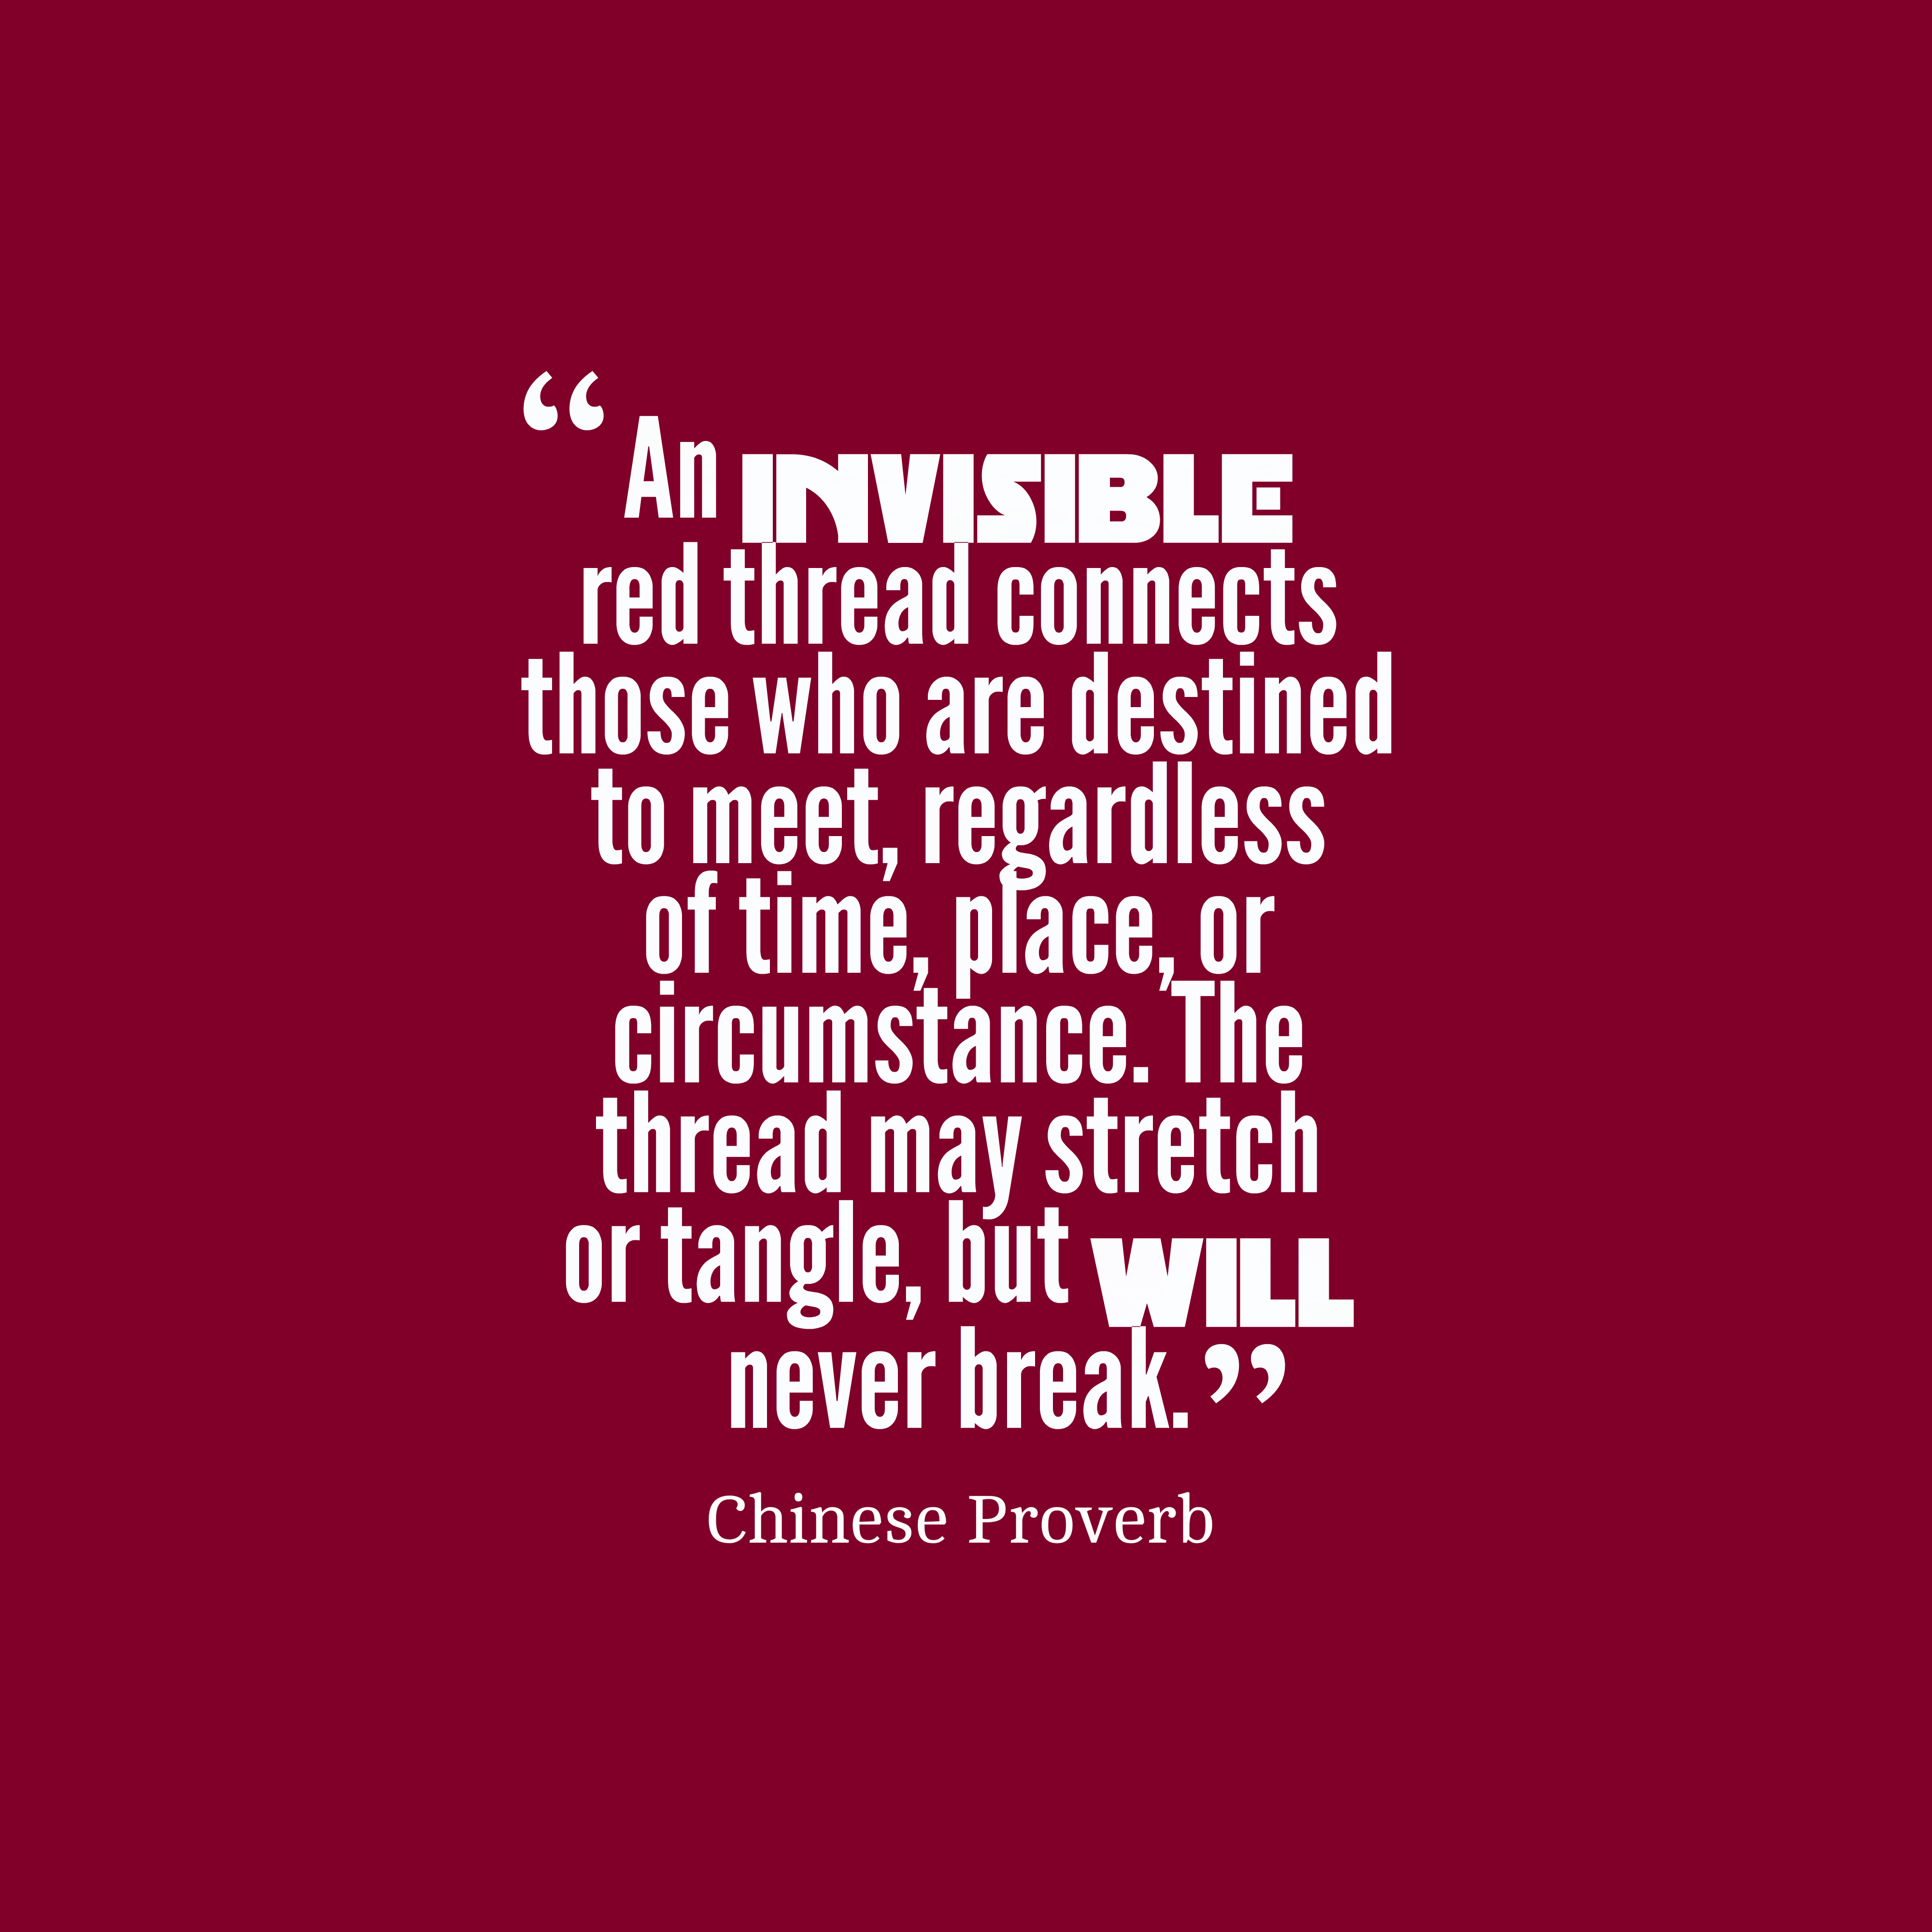 Quotes image of An invisible red thread connects those who are destined to meet, regardless of time, place, or circumstance. The thread may stretch or tangle, but will never break.